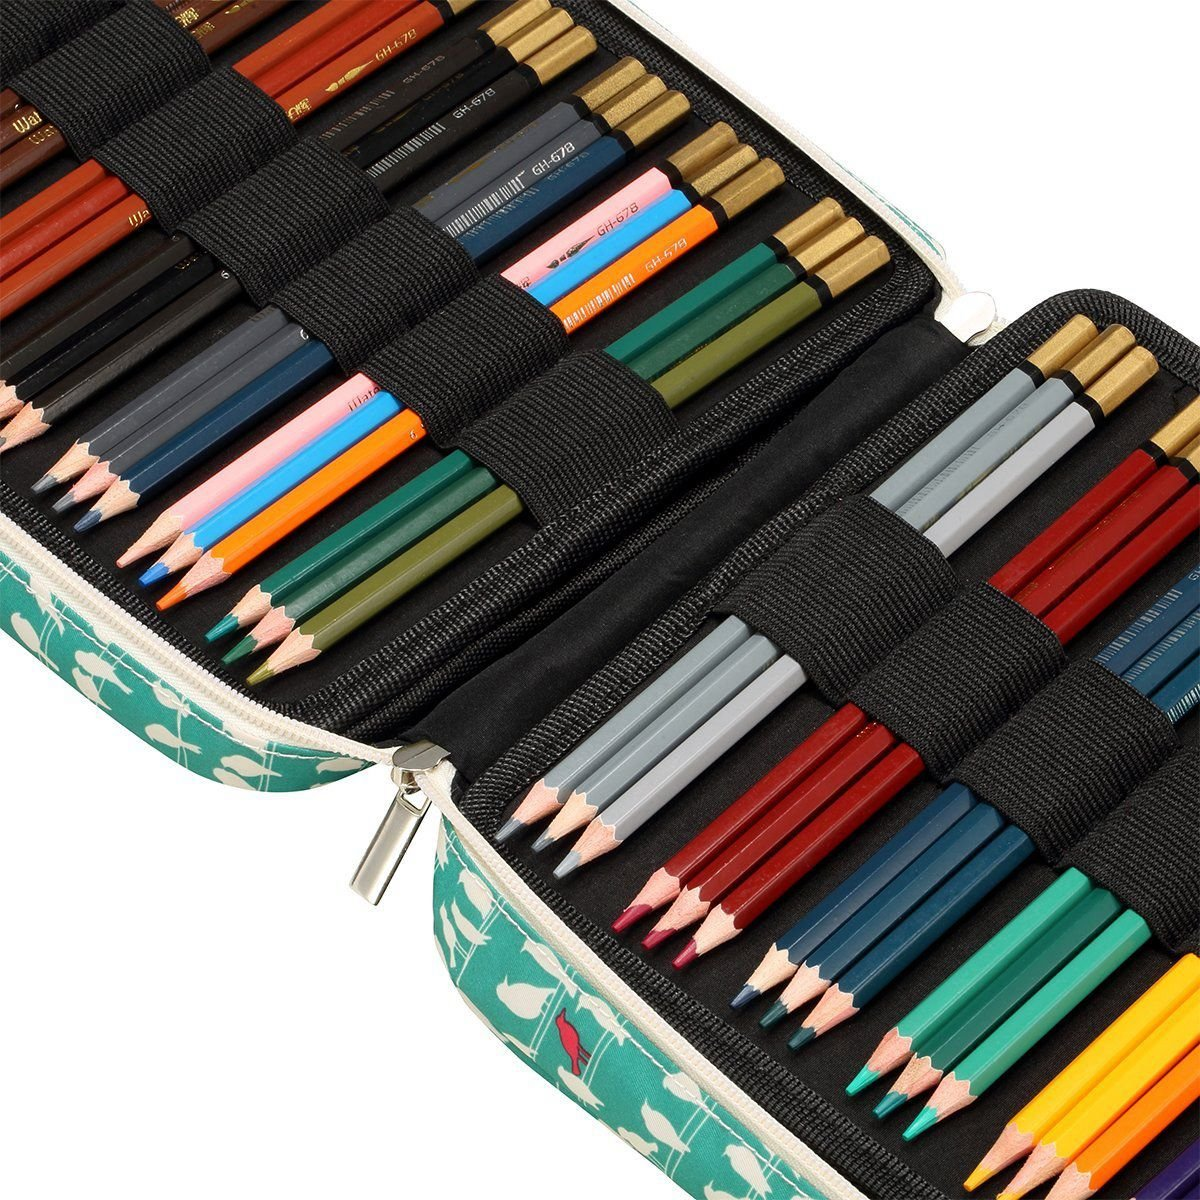 Nrpfell 150 Slots Colored Pencils Universal Pencil Bag Pen Case School Stationery PencilCase Drawing Painting Storage Pouch Pencil Box Green by Nrpfell (Image #6)